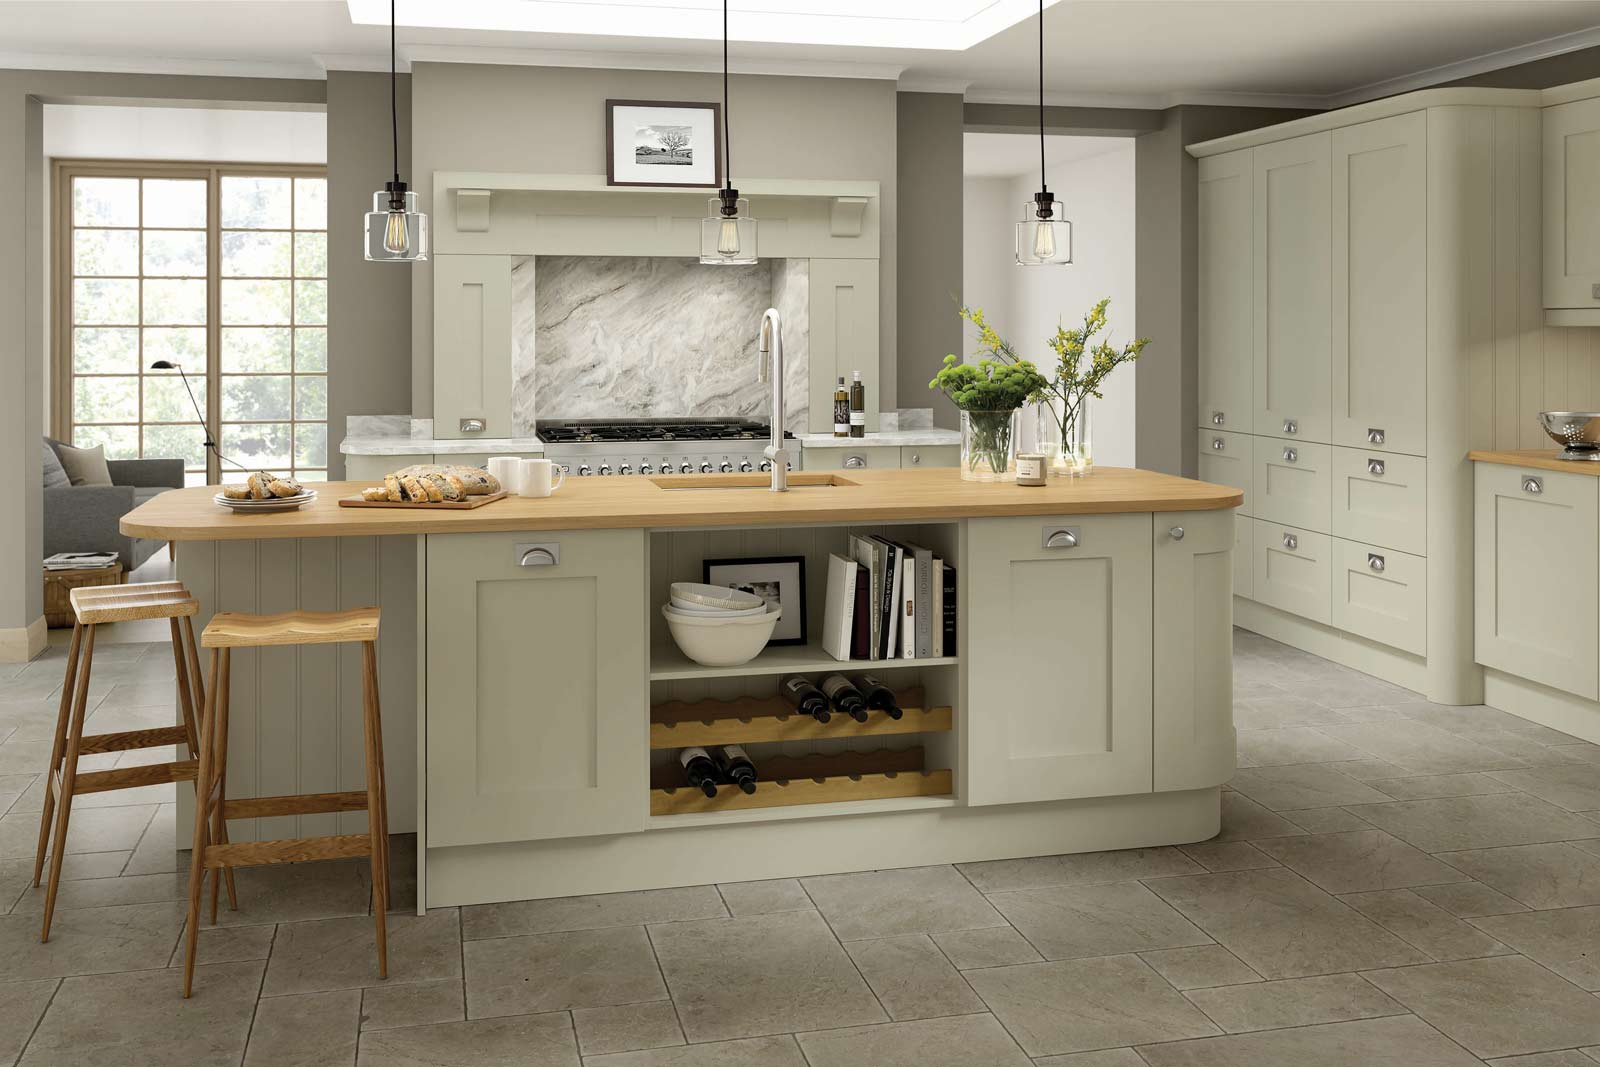 Anderson Kitchens & Bathrooms